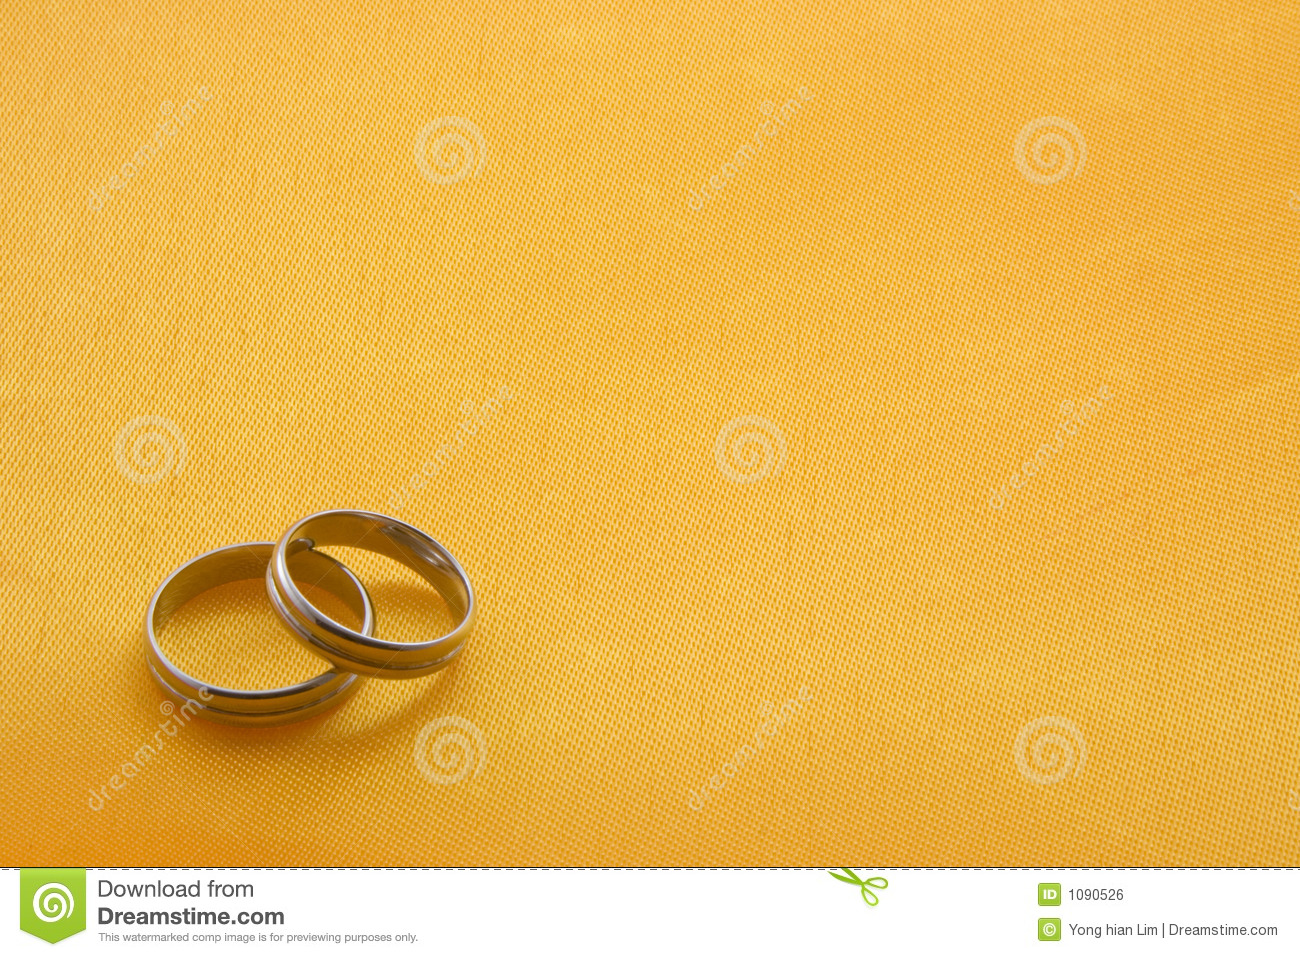 Wedding Rings Stock Photo Image Of Cloth Wallpaper Couple 1090526